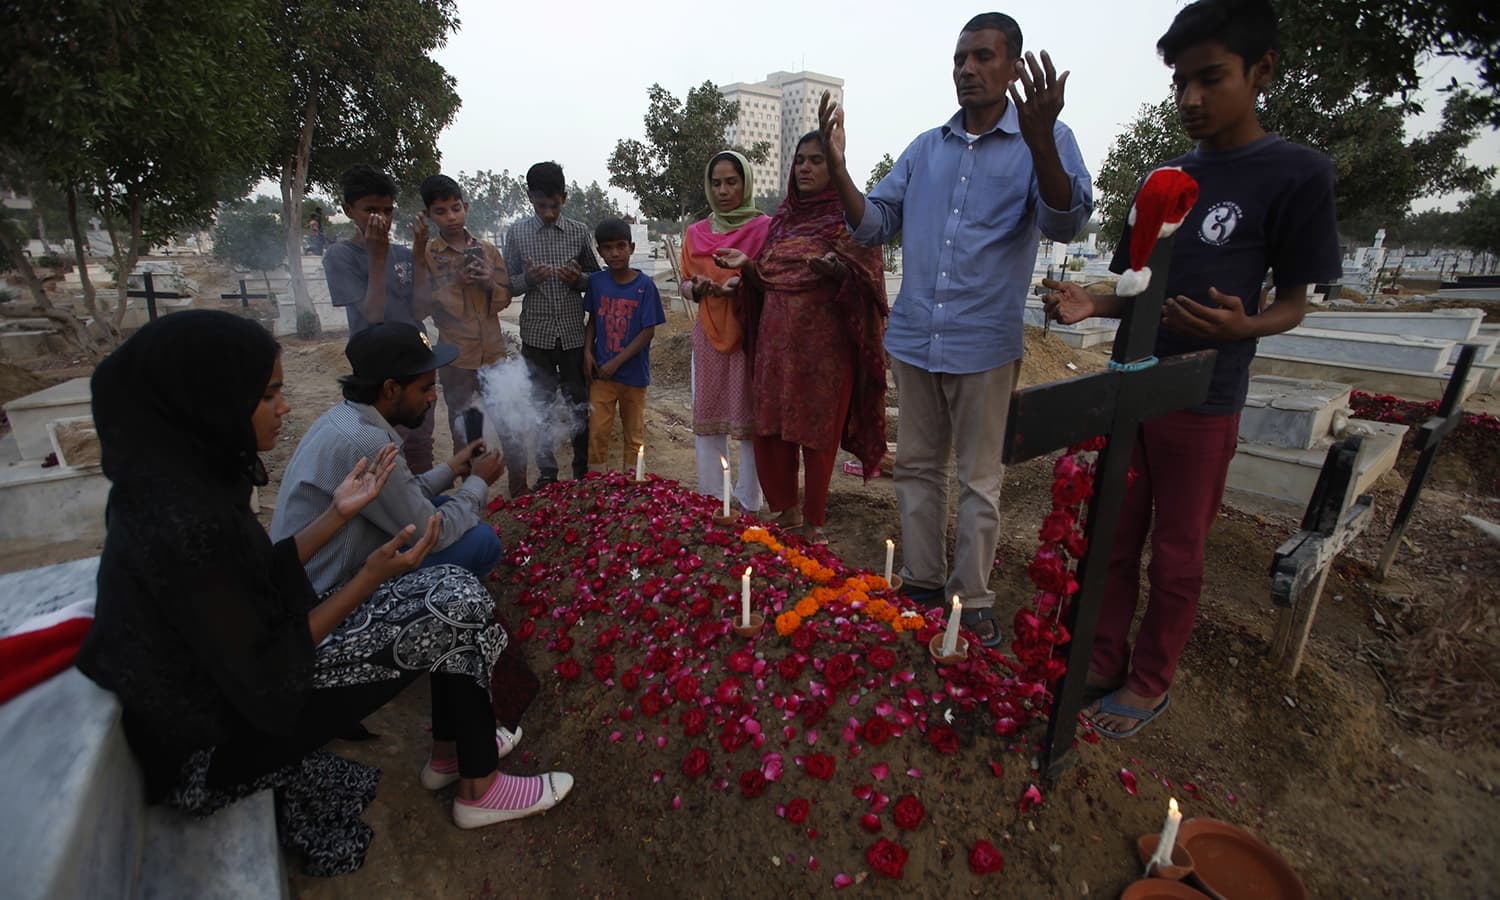 Christians visit a grave of their family member at a graveyard ahead of Christmas in Karachi. ─AP